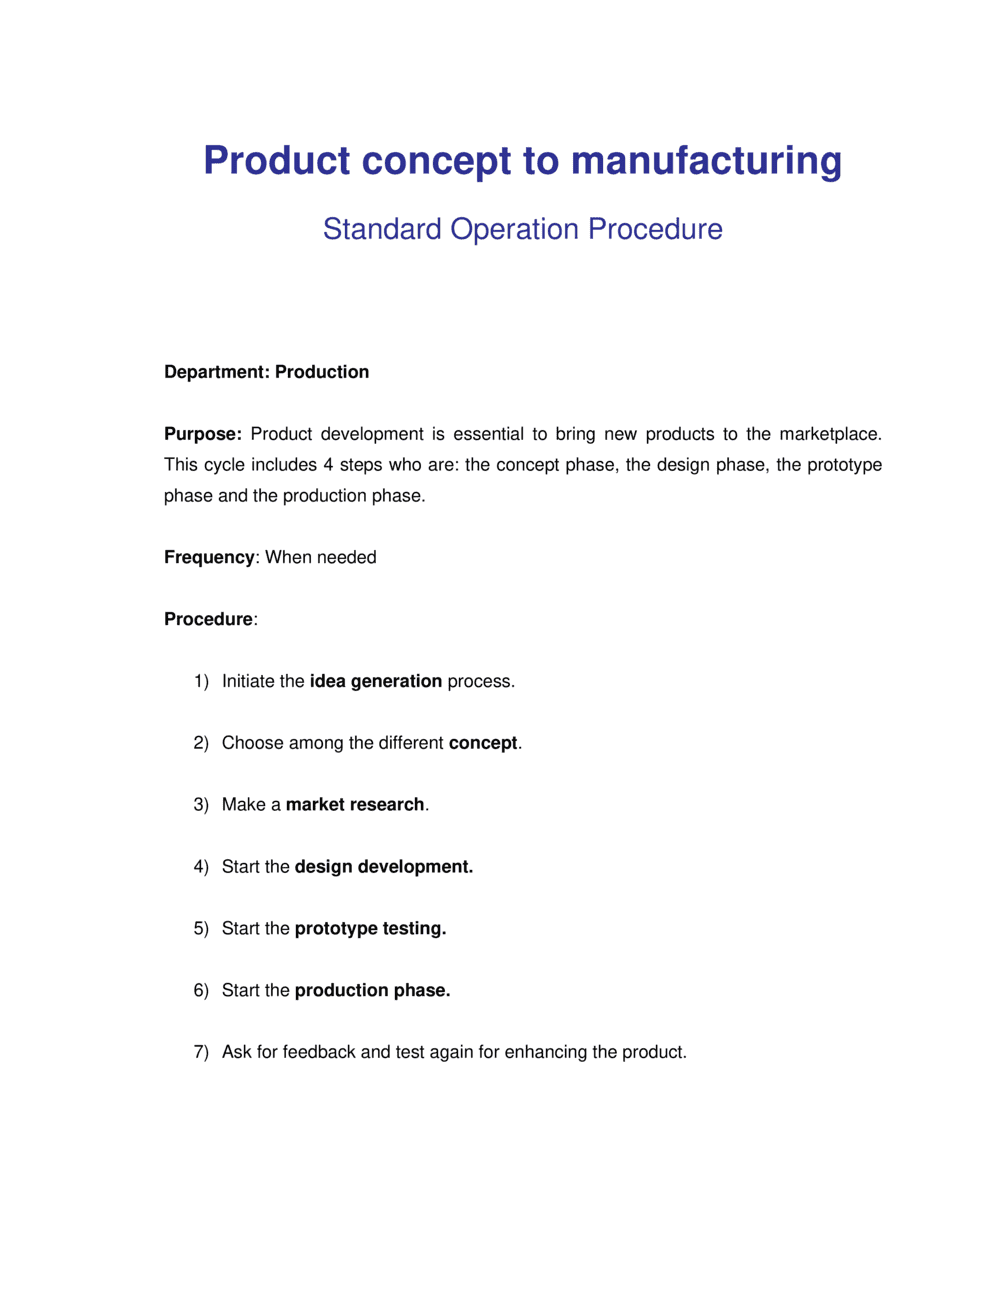 Business-in-a-Box's How to Steps from Product Concept to Manufacturing